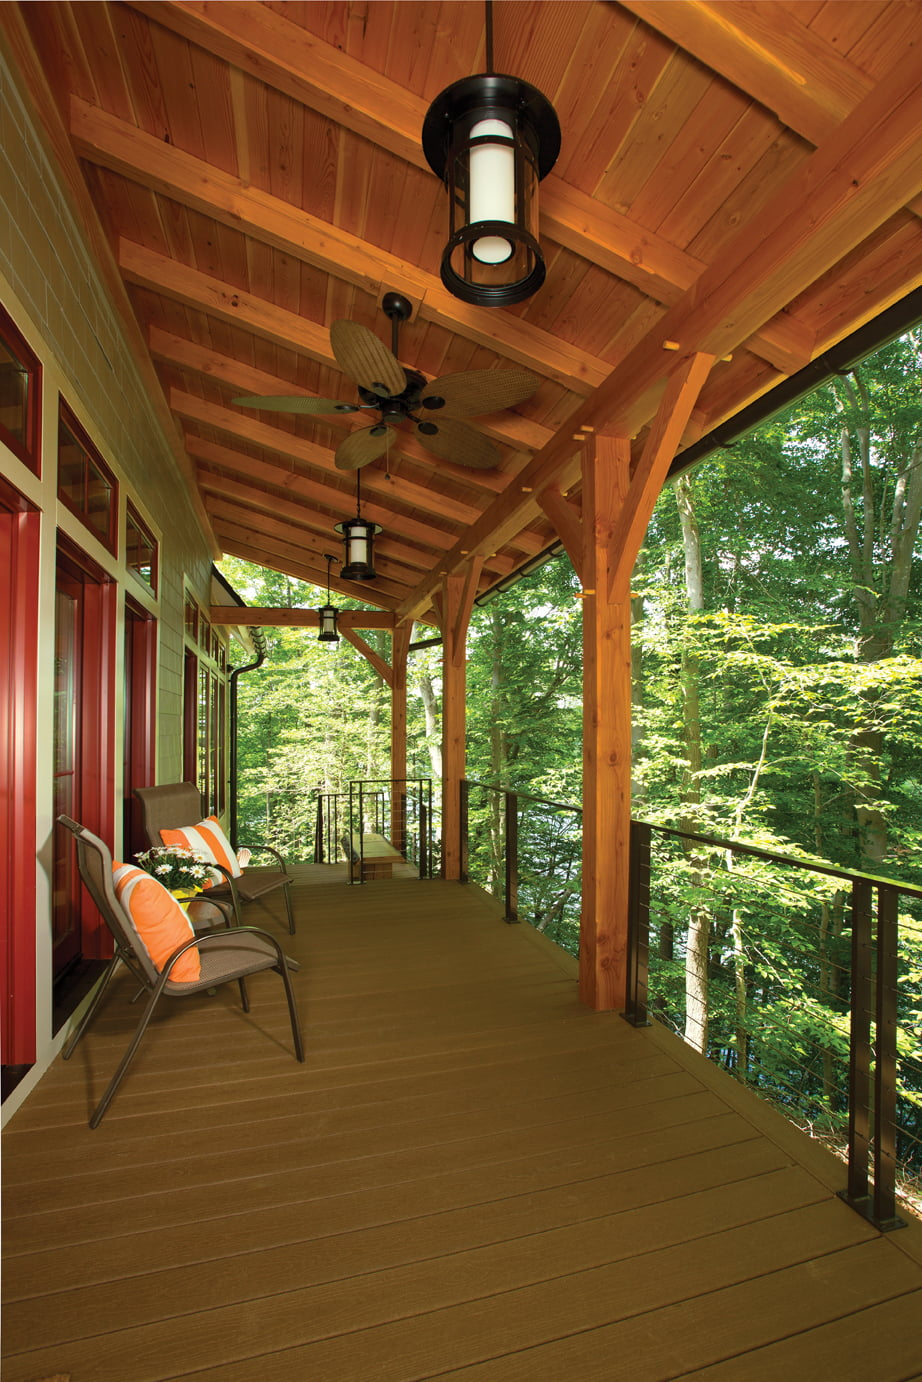 From their side porch, the Kohlers can descend through the woods to their dock, where kayaks await.